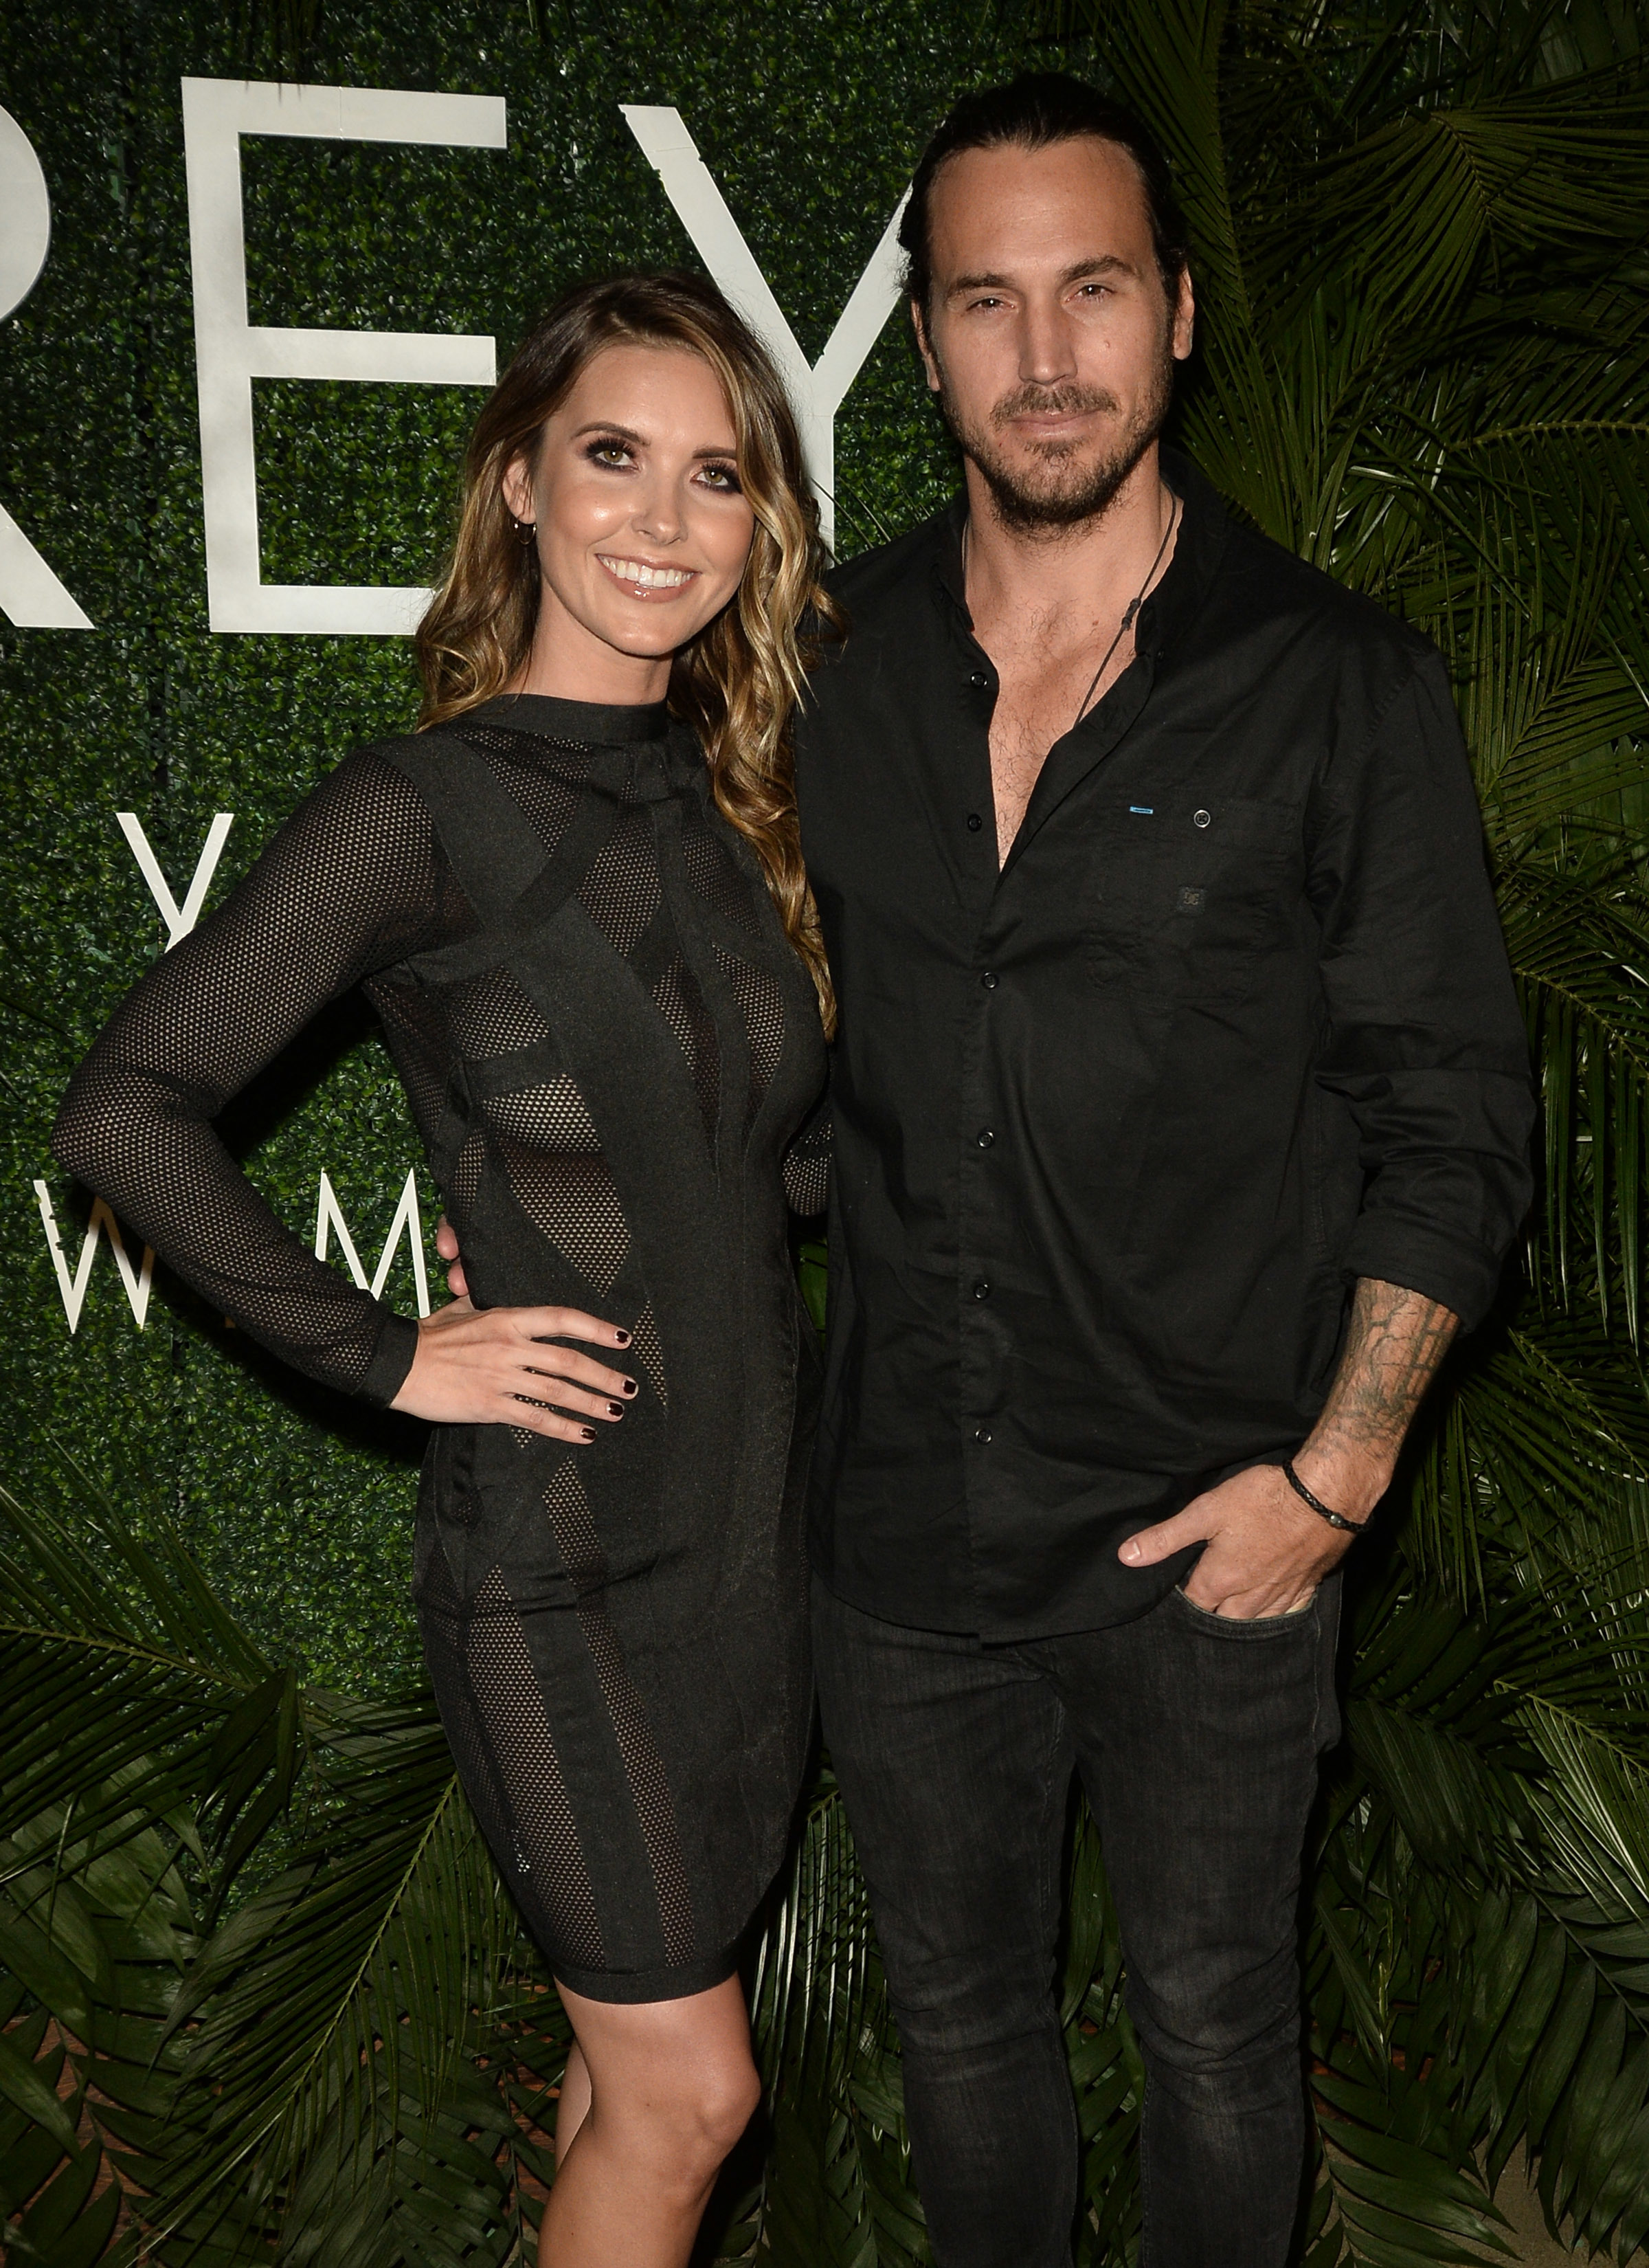 Audrina Patridge is 'getting back to her normal life' after split